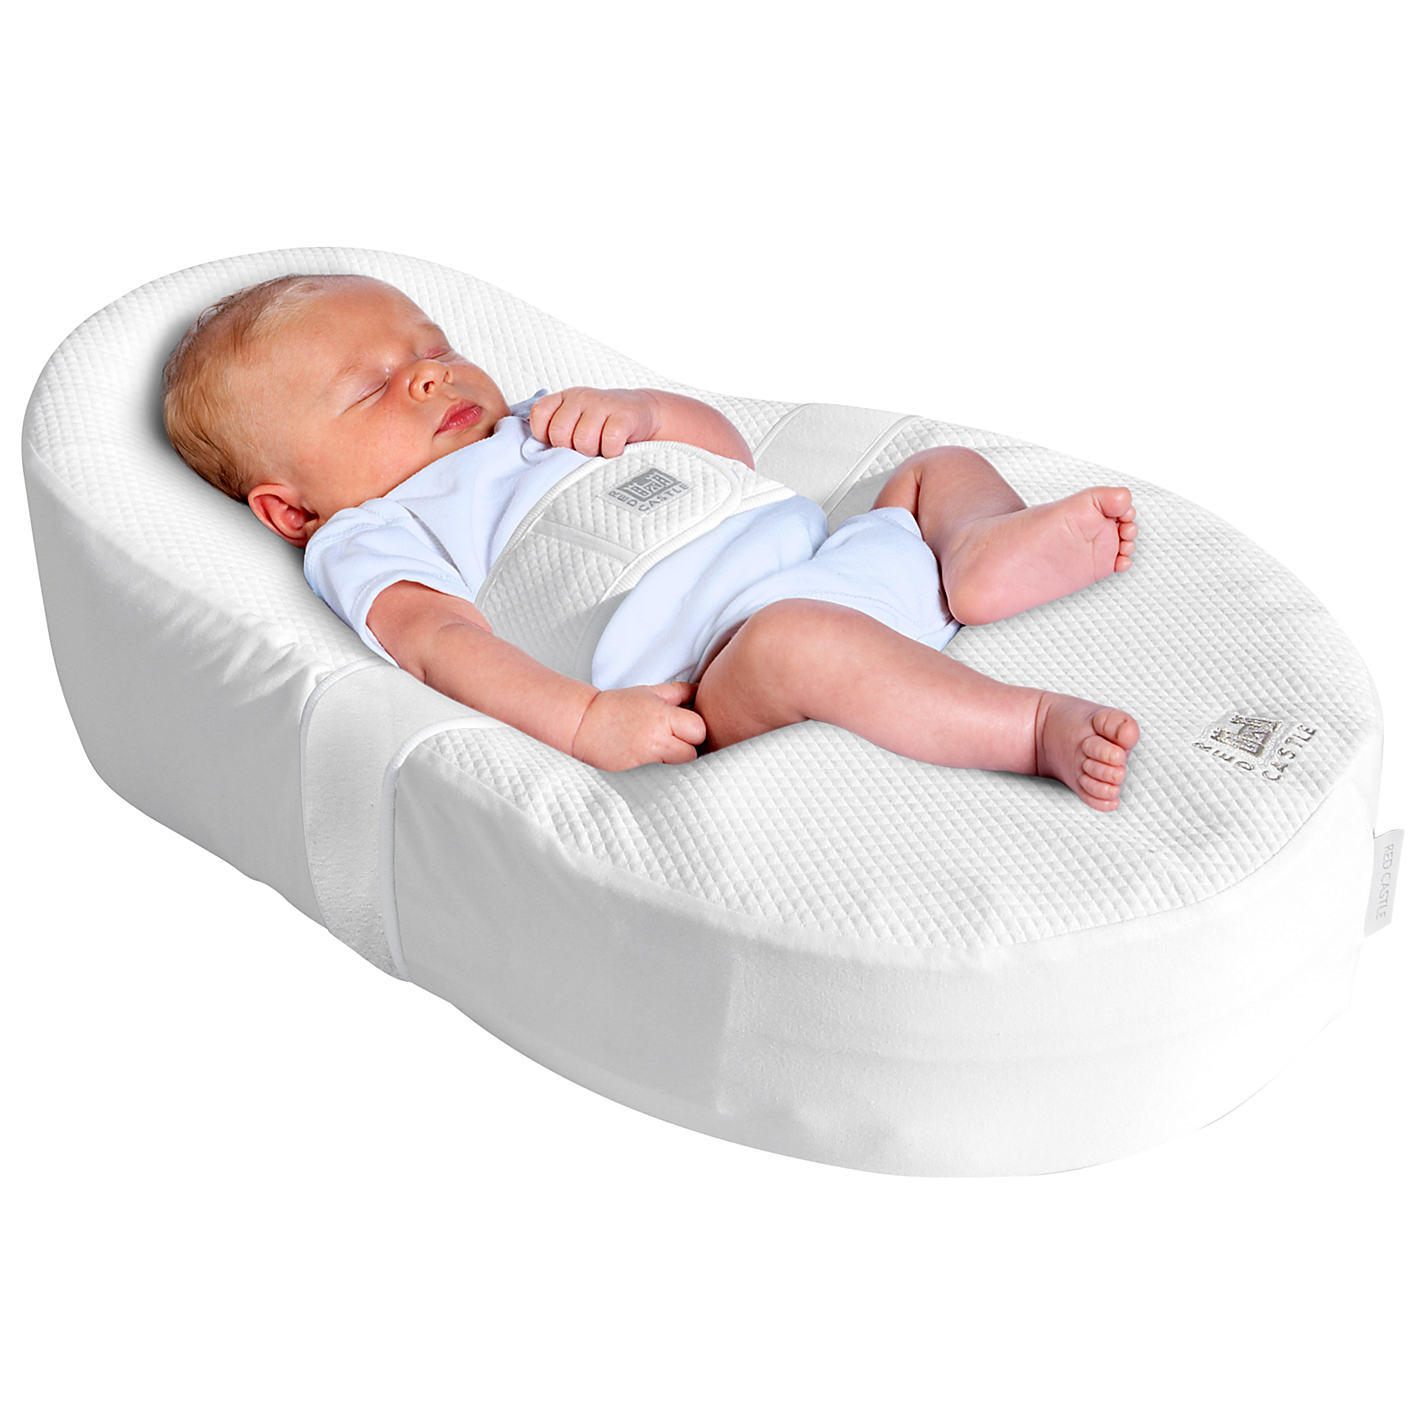 Foam baby chairs - Cocoonababy Nest And Fitted Sheet White